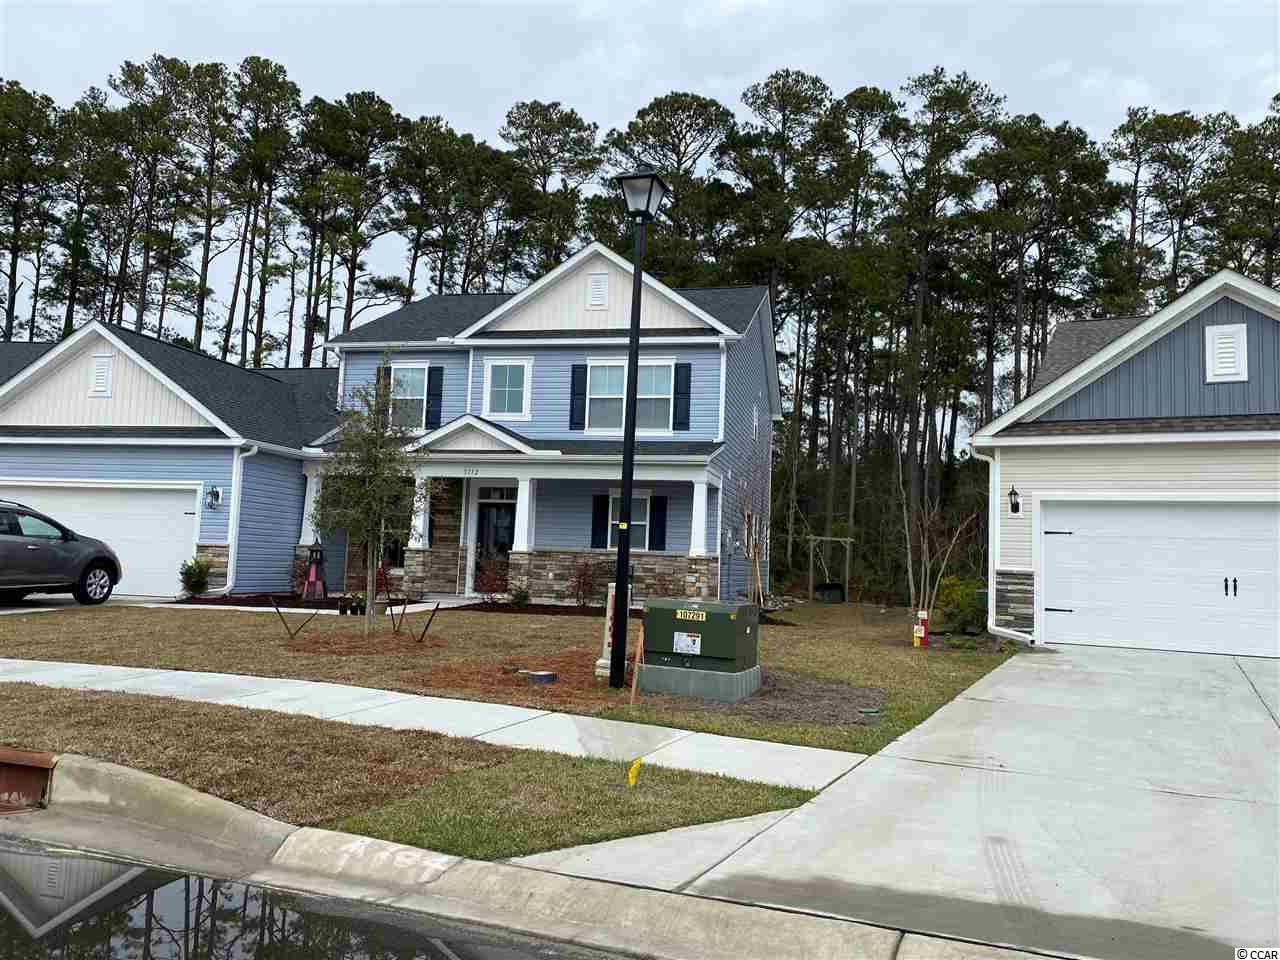 Park Pointe is Realstar Home's new Natural Gas Community.  Located across from the North Myrtle Beach Park and Sports Complex and just off the Robert Edge Parkway, Park Pointe is convenient to everything the north end of the Grand Strand has to offer. Surrounded by nature preserve, Park Pointe offers a tranquil, inviting backdrop for your new home.  Park Pointe allows easy access to major highways like Hwy 31, Hwy 90, Hwy 17 and N. Myrtle Beach's Main Street. You can live minutes to beautiful beaches, fabulous shopping, championship golf, great restaurants, amazing night-life, first-class medical facilities and other local attractions...in other words, it's everything you're looking for in a Coastal Carolina location.  With 13 open and uniquely designed plans ranging from 1360 heated sq. ft. to over 3000 heated sq. ft., these well-appointed homes offer a tremendous selection of options.  Next door you'll find the North Myrtle Beach Park and Sports Complex.  The park is equipped with a wide selection of amenities that will add value, fun, and comfort such as concessions, picnic shelters, playgrounds, an amphitheater, walking/bike trails, dog parks, a 25 acre lake for water activities, a 10 acre meadow and much more.  Enjoy everything that North Myrtle Beach and Little River has to offer when you make Park Pointe your place to make memories happen.  *Photos are of model with additional upgrades*